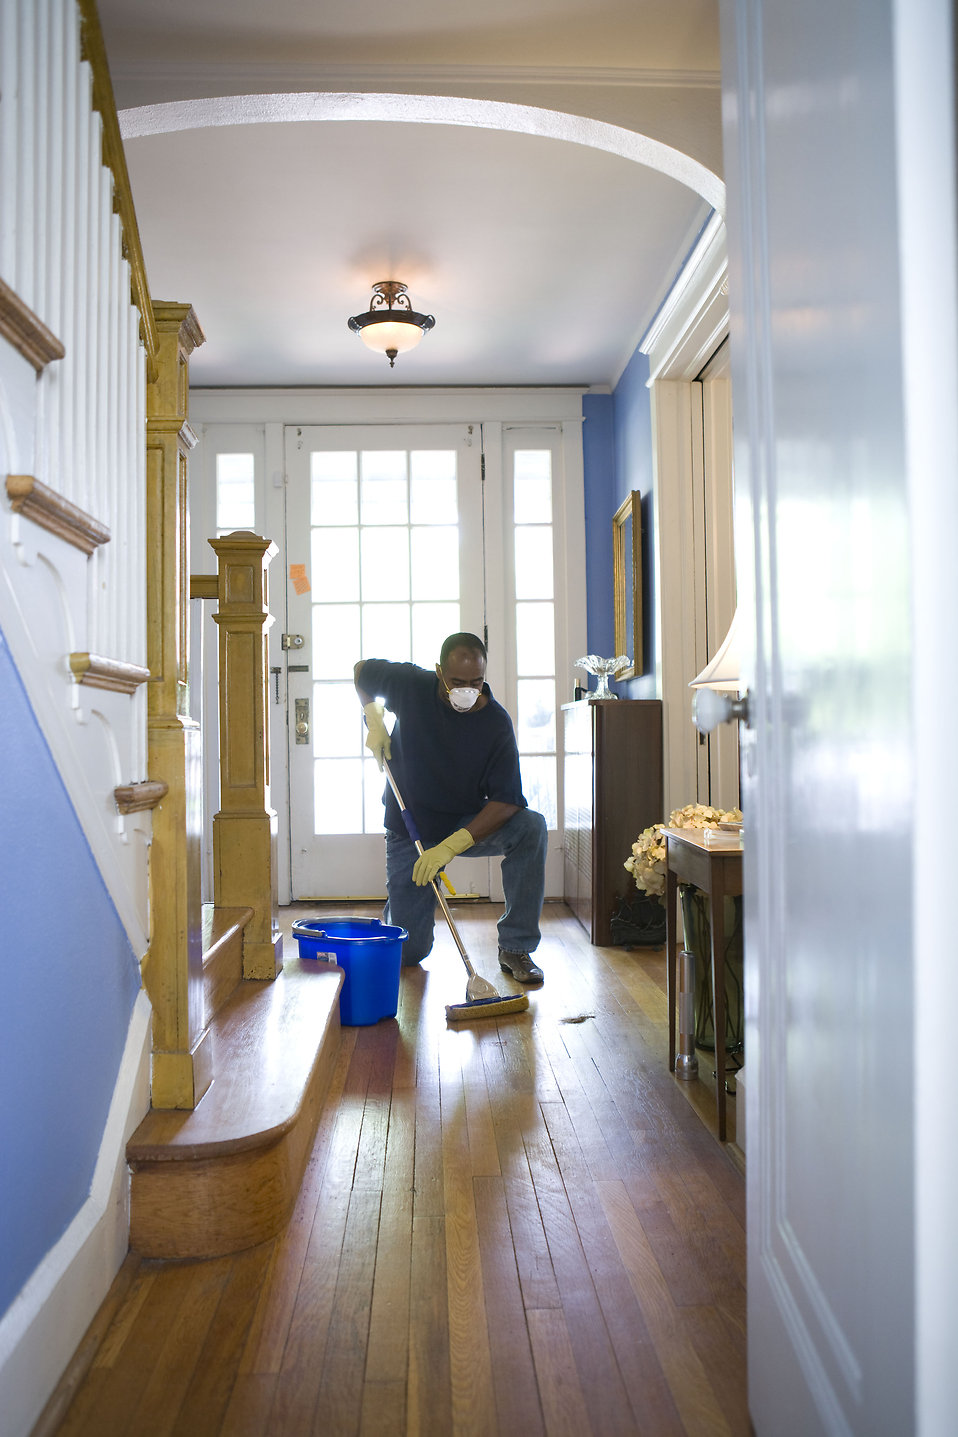 Mopping | Free Stock Photo | An African-American man ...